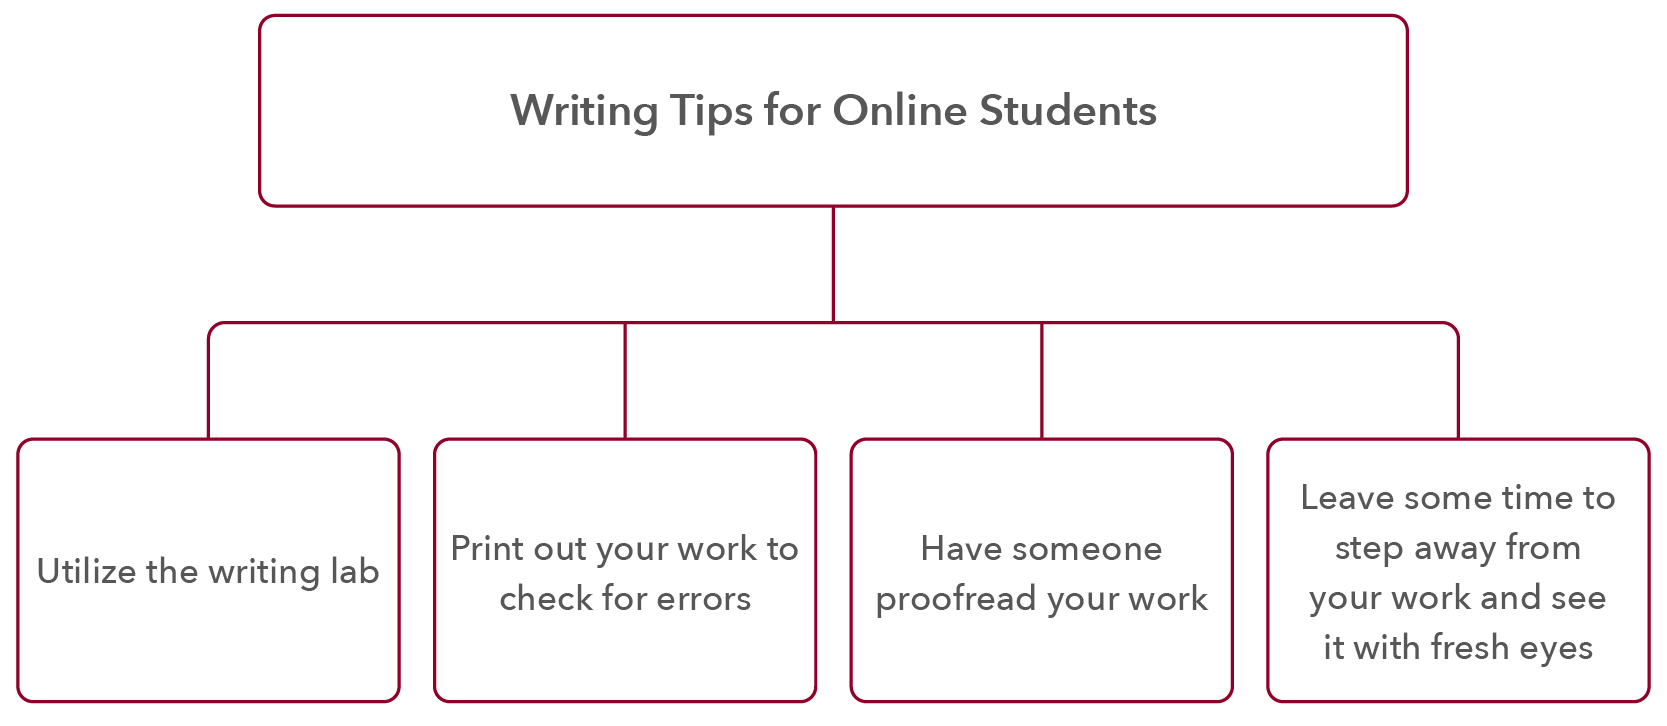 Writing Tips for Online Students